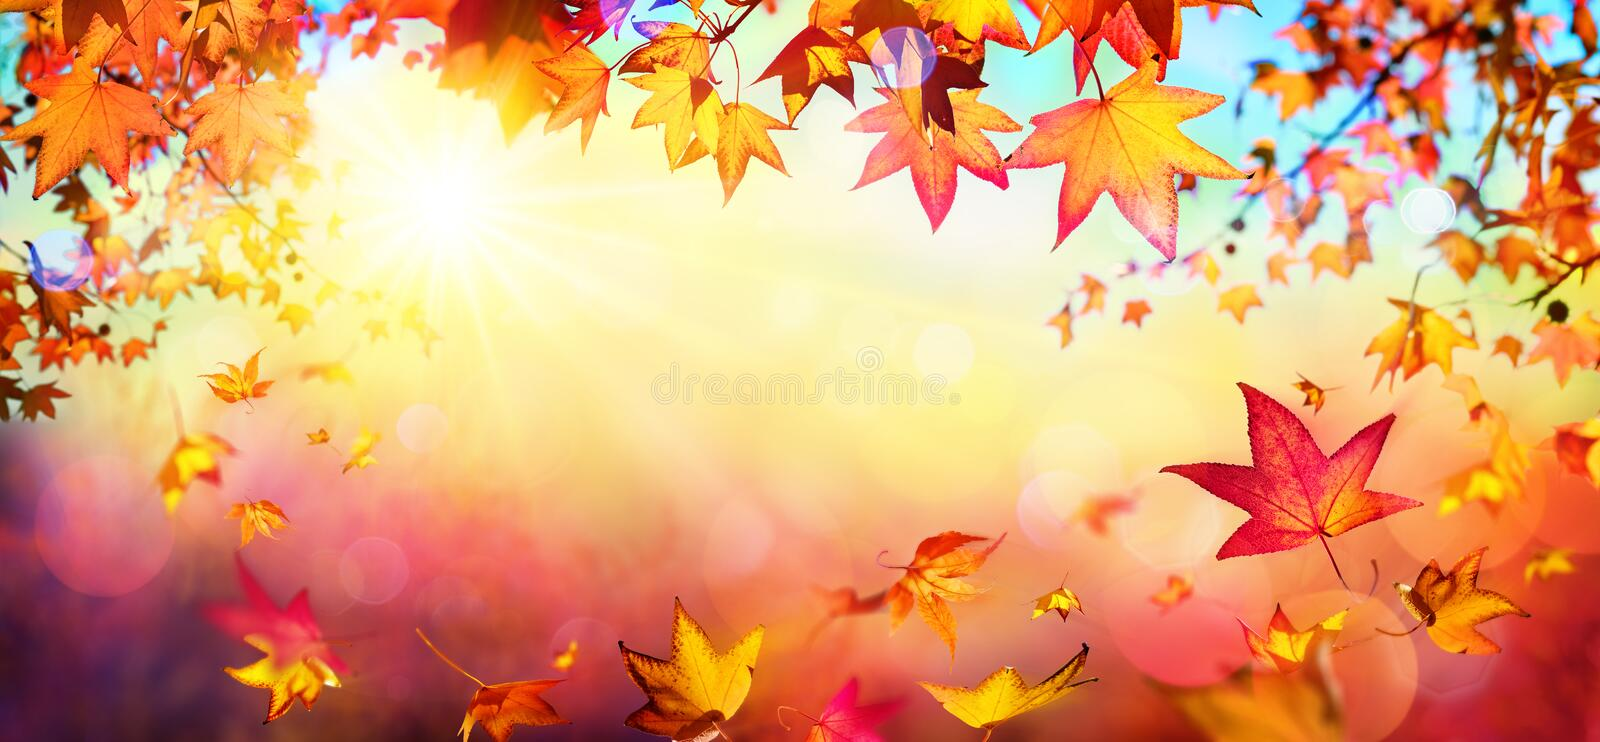 Autumn Red Leaves With Sunlight de queda foto de stock royalty free